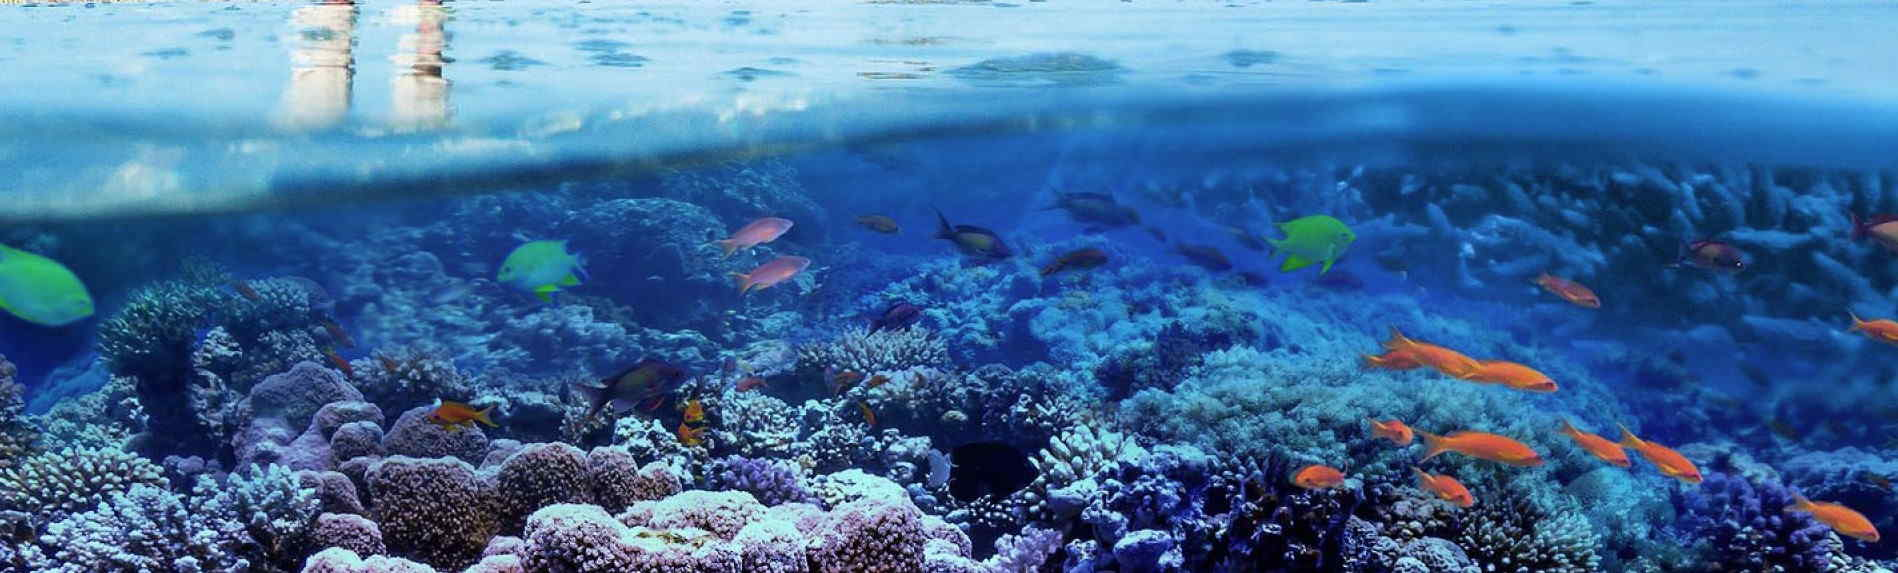 Explore the underwater world of the Great Barrier Reef from your own home!